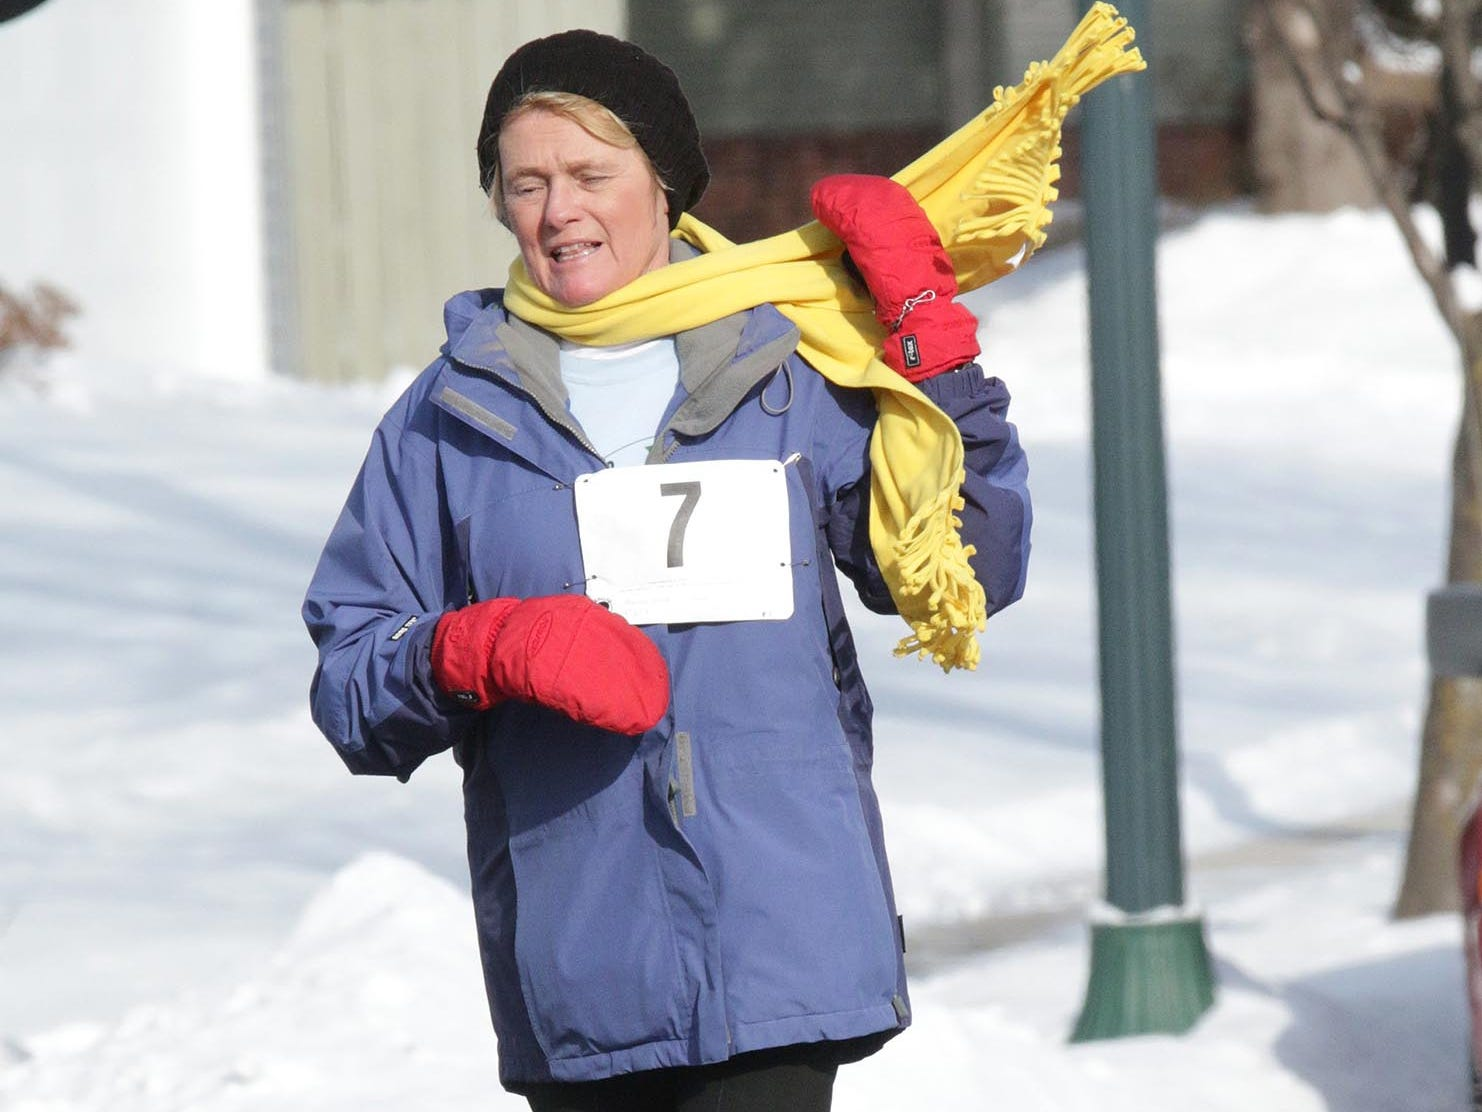 Therese Wilk (7) of Elkhart Lake whips her scarf around her neck while running in the 2-mile Schneelauf Run, Saturday, January 26, 2019, in Elkhart Lake, Wis. The event is part of Schnee Days in Elkhart Lake. Wilk's time in the 60 and over class was 27:43